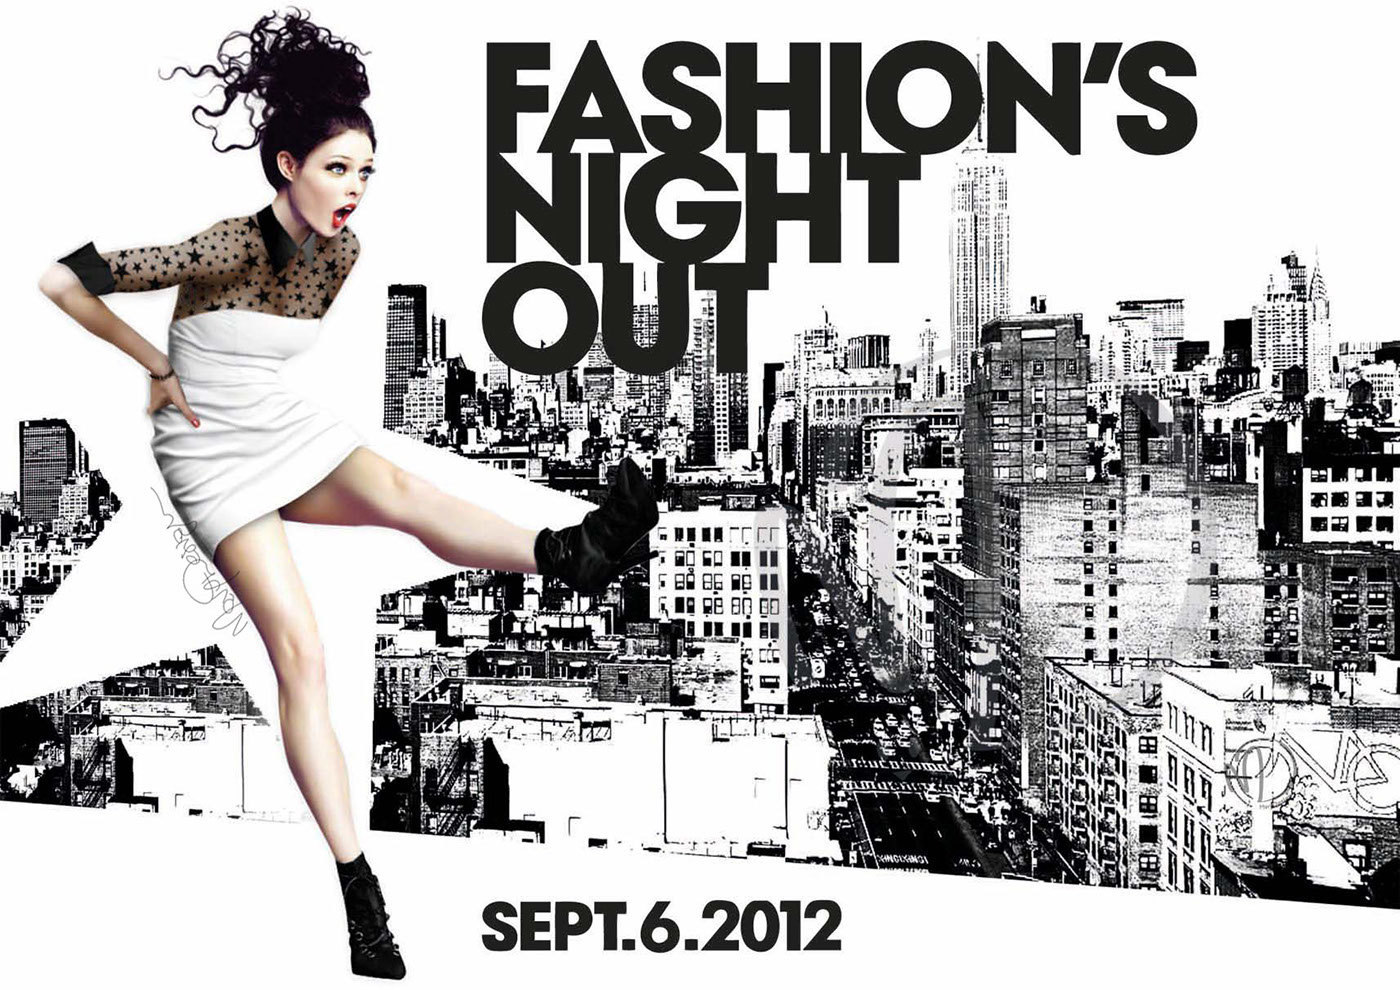 Advertising Campain Vogue Fashion Night Out 2012 On Behance